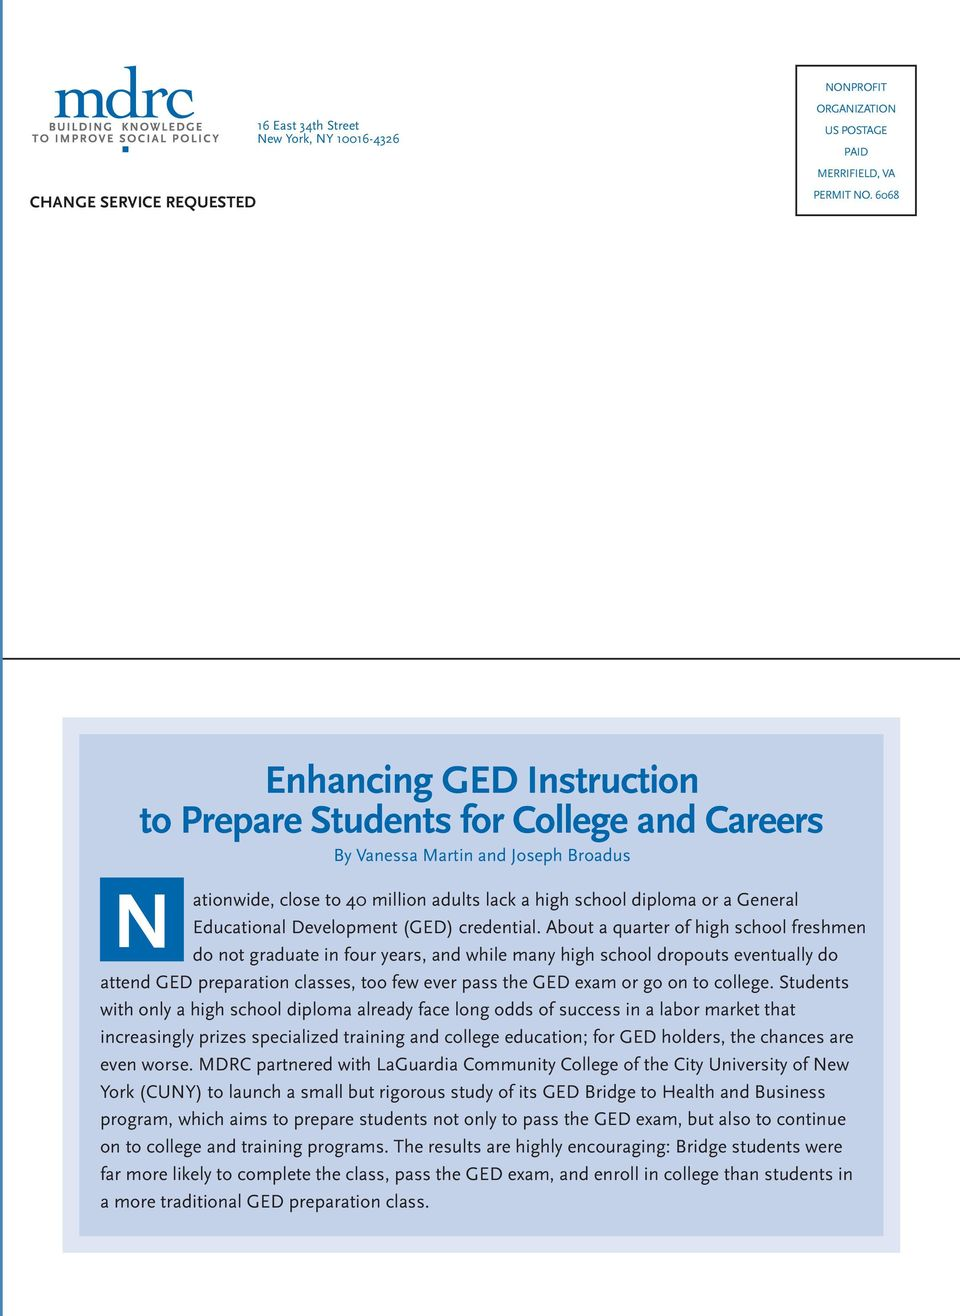 Educational Development (GED) credential.